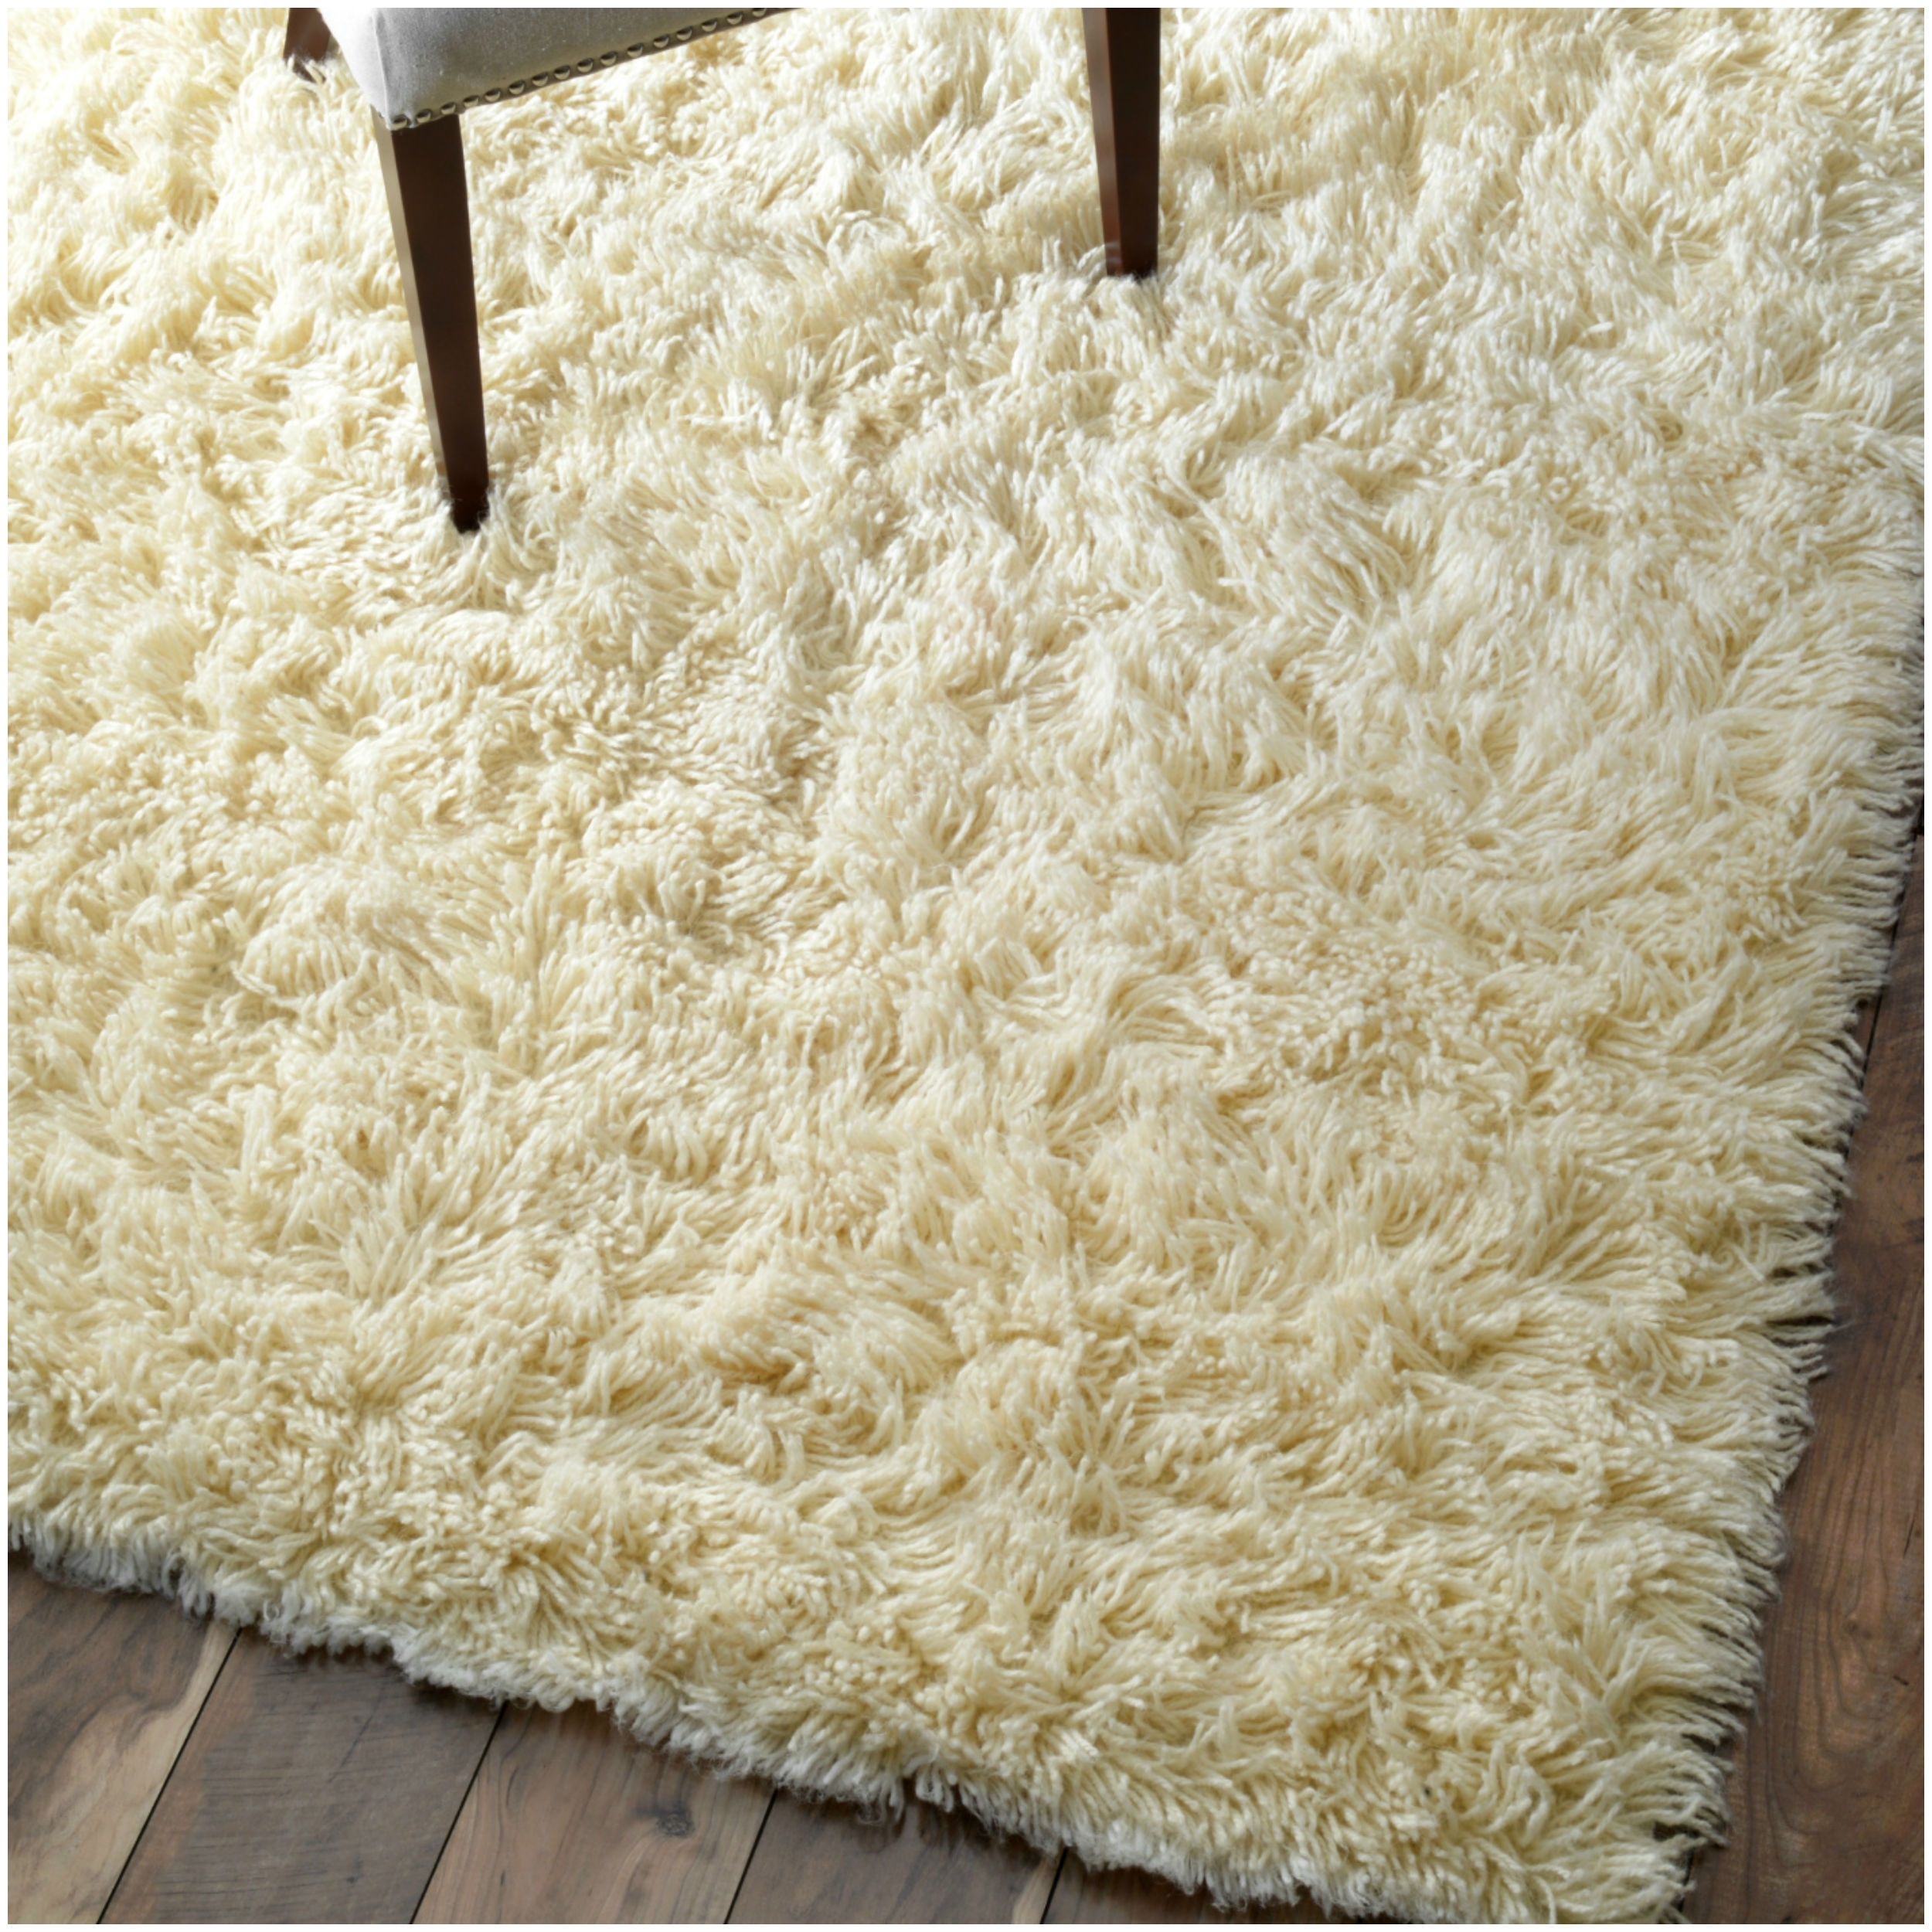 White Berber Area Rug Images Home Furniture Ideas With Regard To Wool Berber Area Rugs (View 6 of 15)